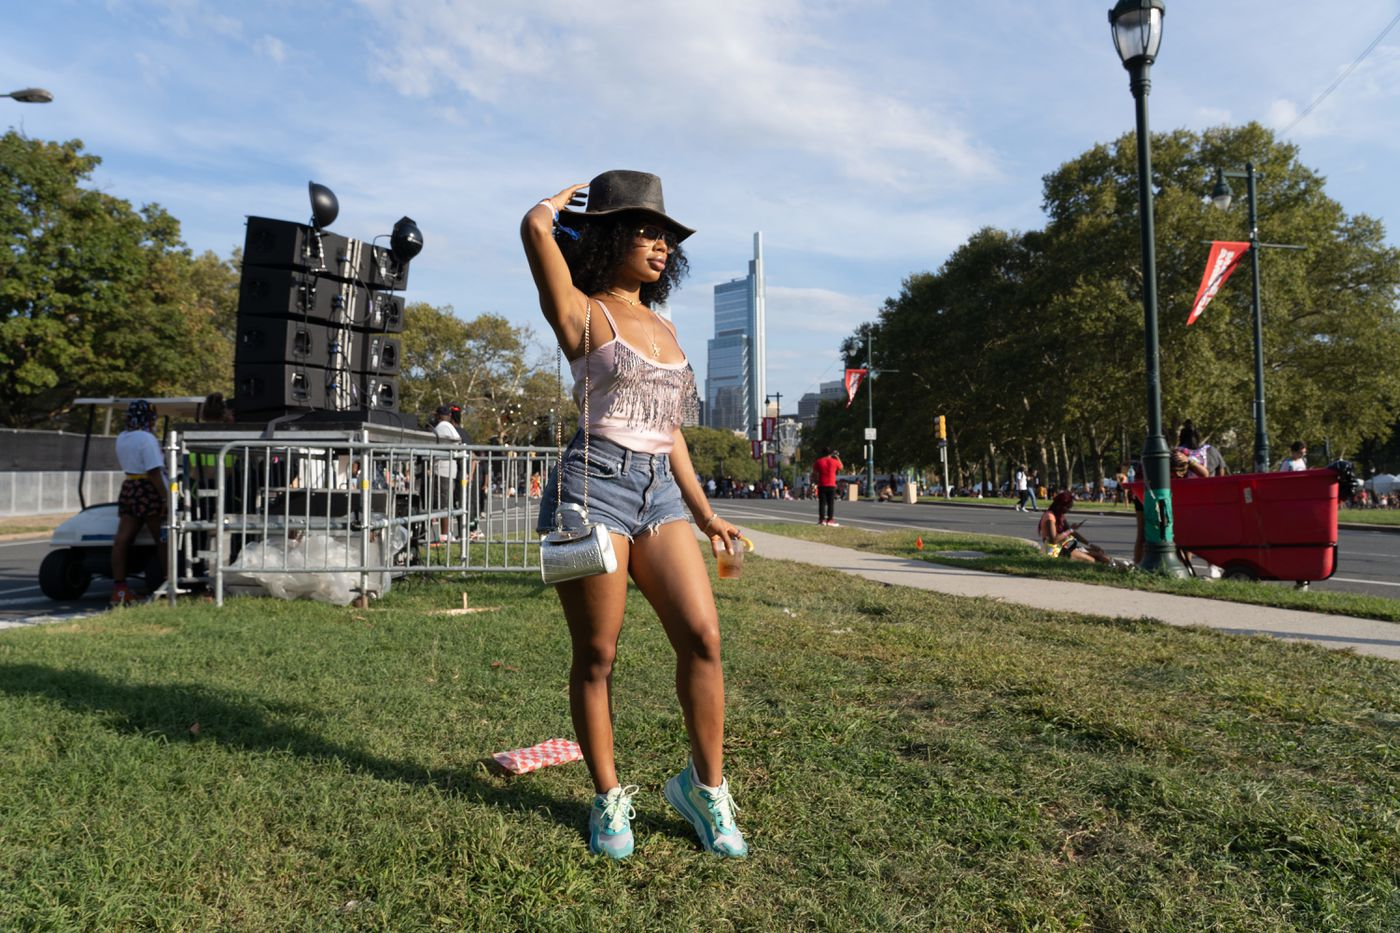 """Kennedy Johnson, 28 of Atlanta, wearing her outfit from a thrift store is at the Made in America Festival """"to see Cardi B, have fun and keep it authentic"""" on Benjamin Franklin Parkway in Center City, Philadelphia on Saturday, August 31, 2019."""